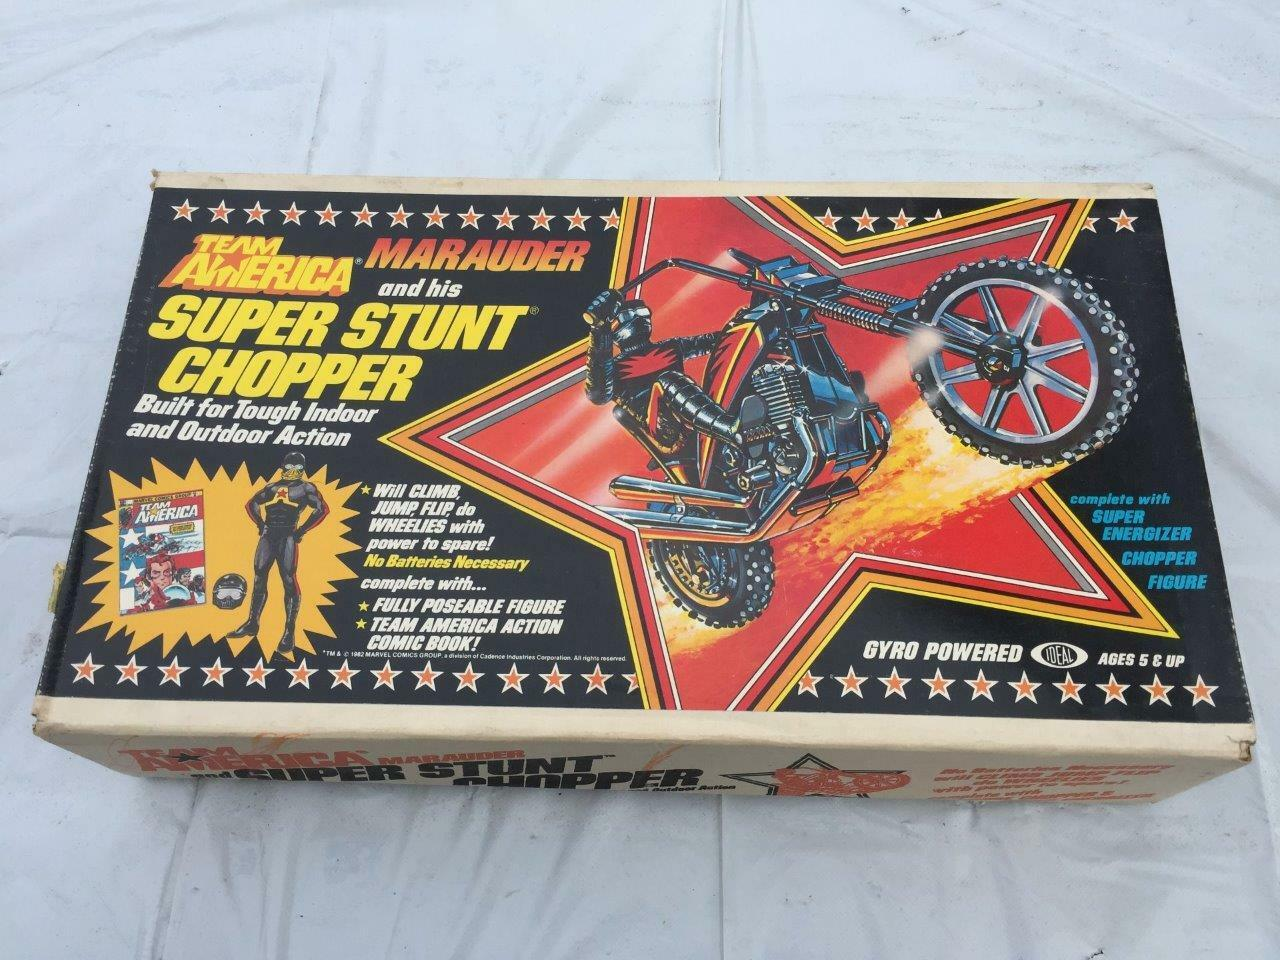 1981 IDEAL Team America Marauder Super Stunt Chopper Gyro Powered MIB SEALED